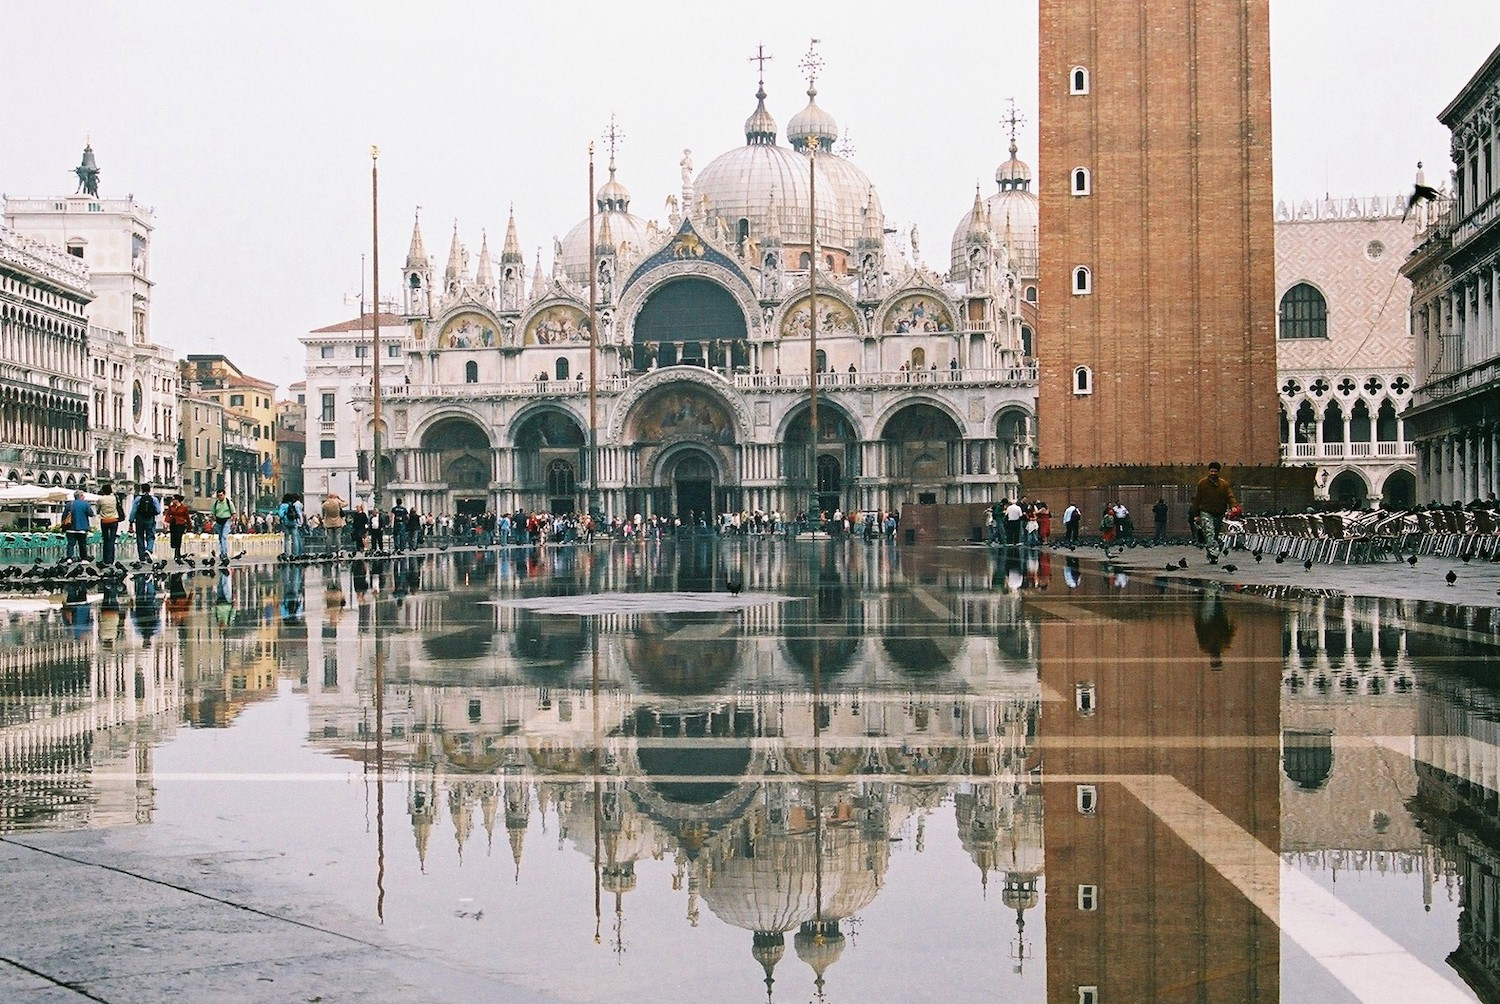 Flooding in Basilica San Marco Plaza, Venice.